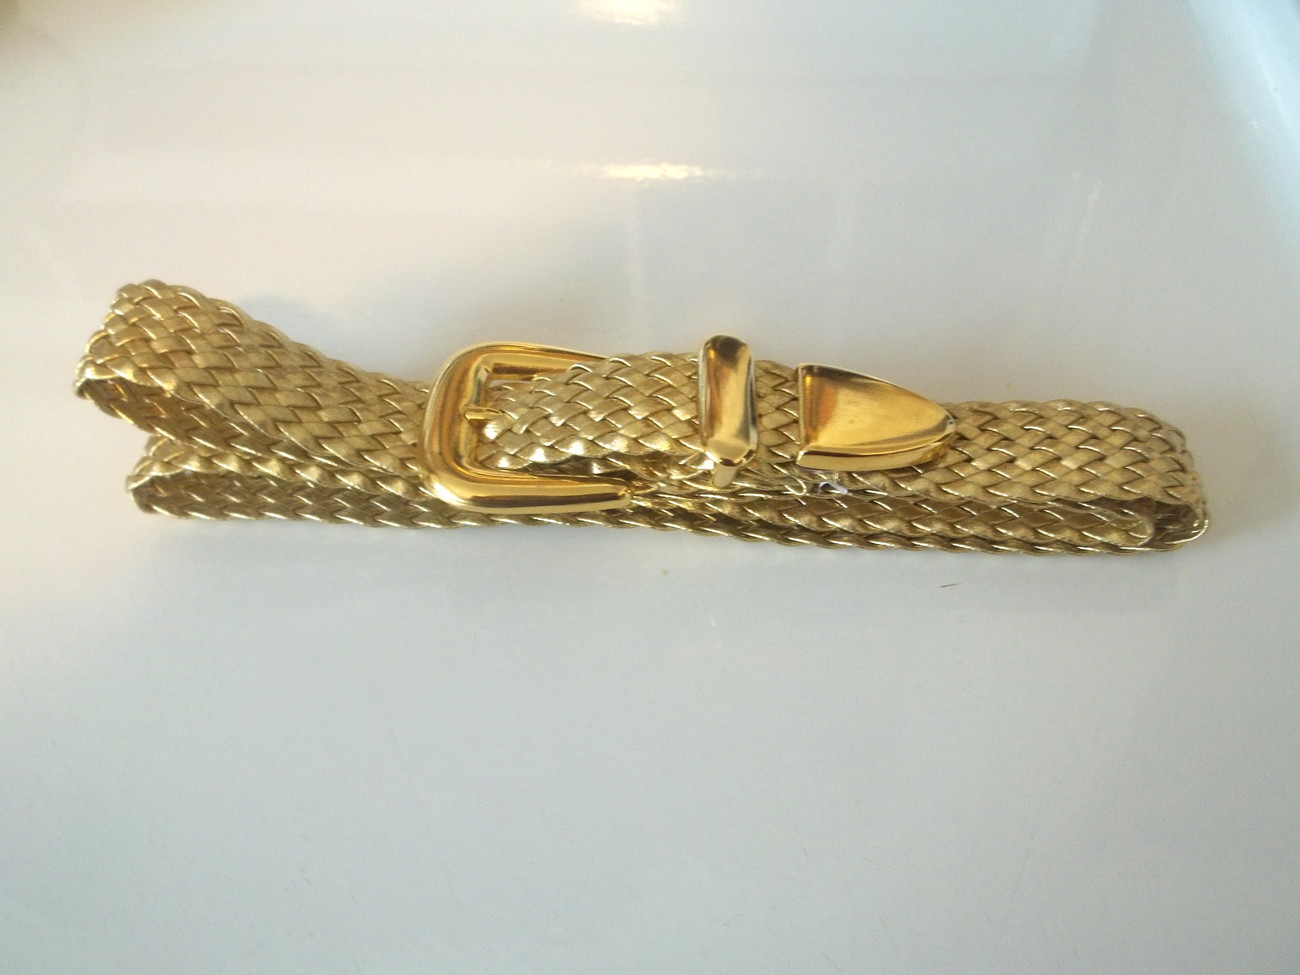 Ladies_fashion_belt_braided_gold_38_x_1_lg_003